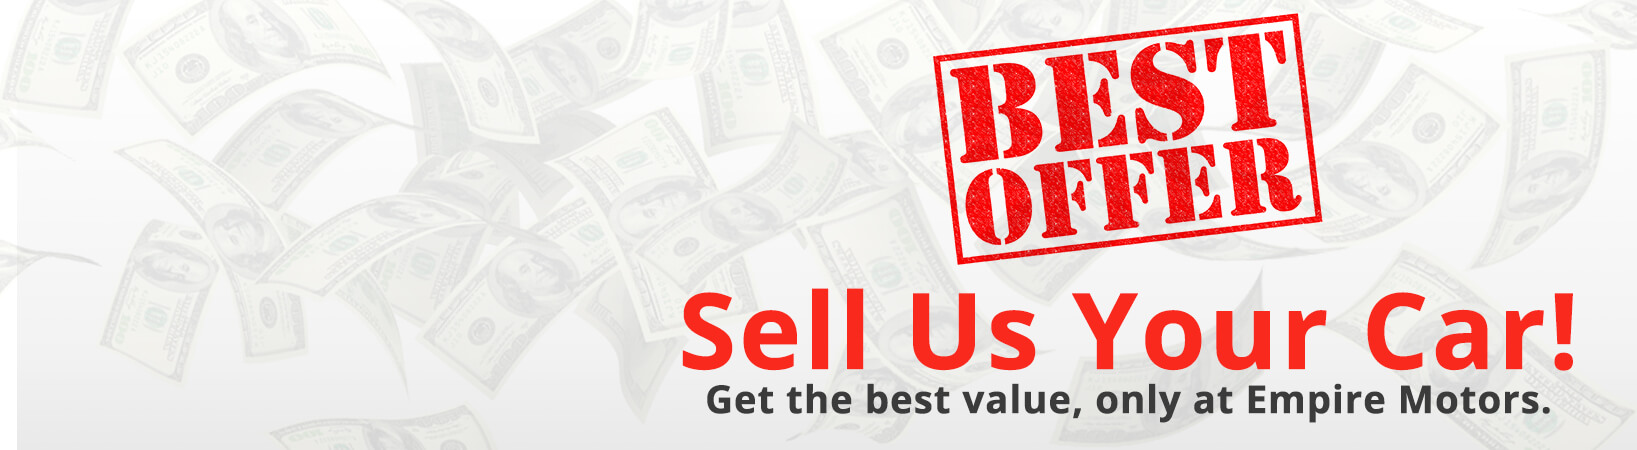 BEST OFFER: Sell us your car! Get the best value, only at Empire Motors.